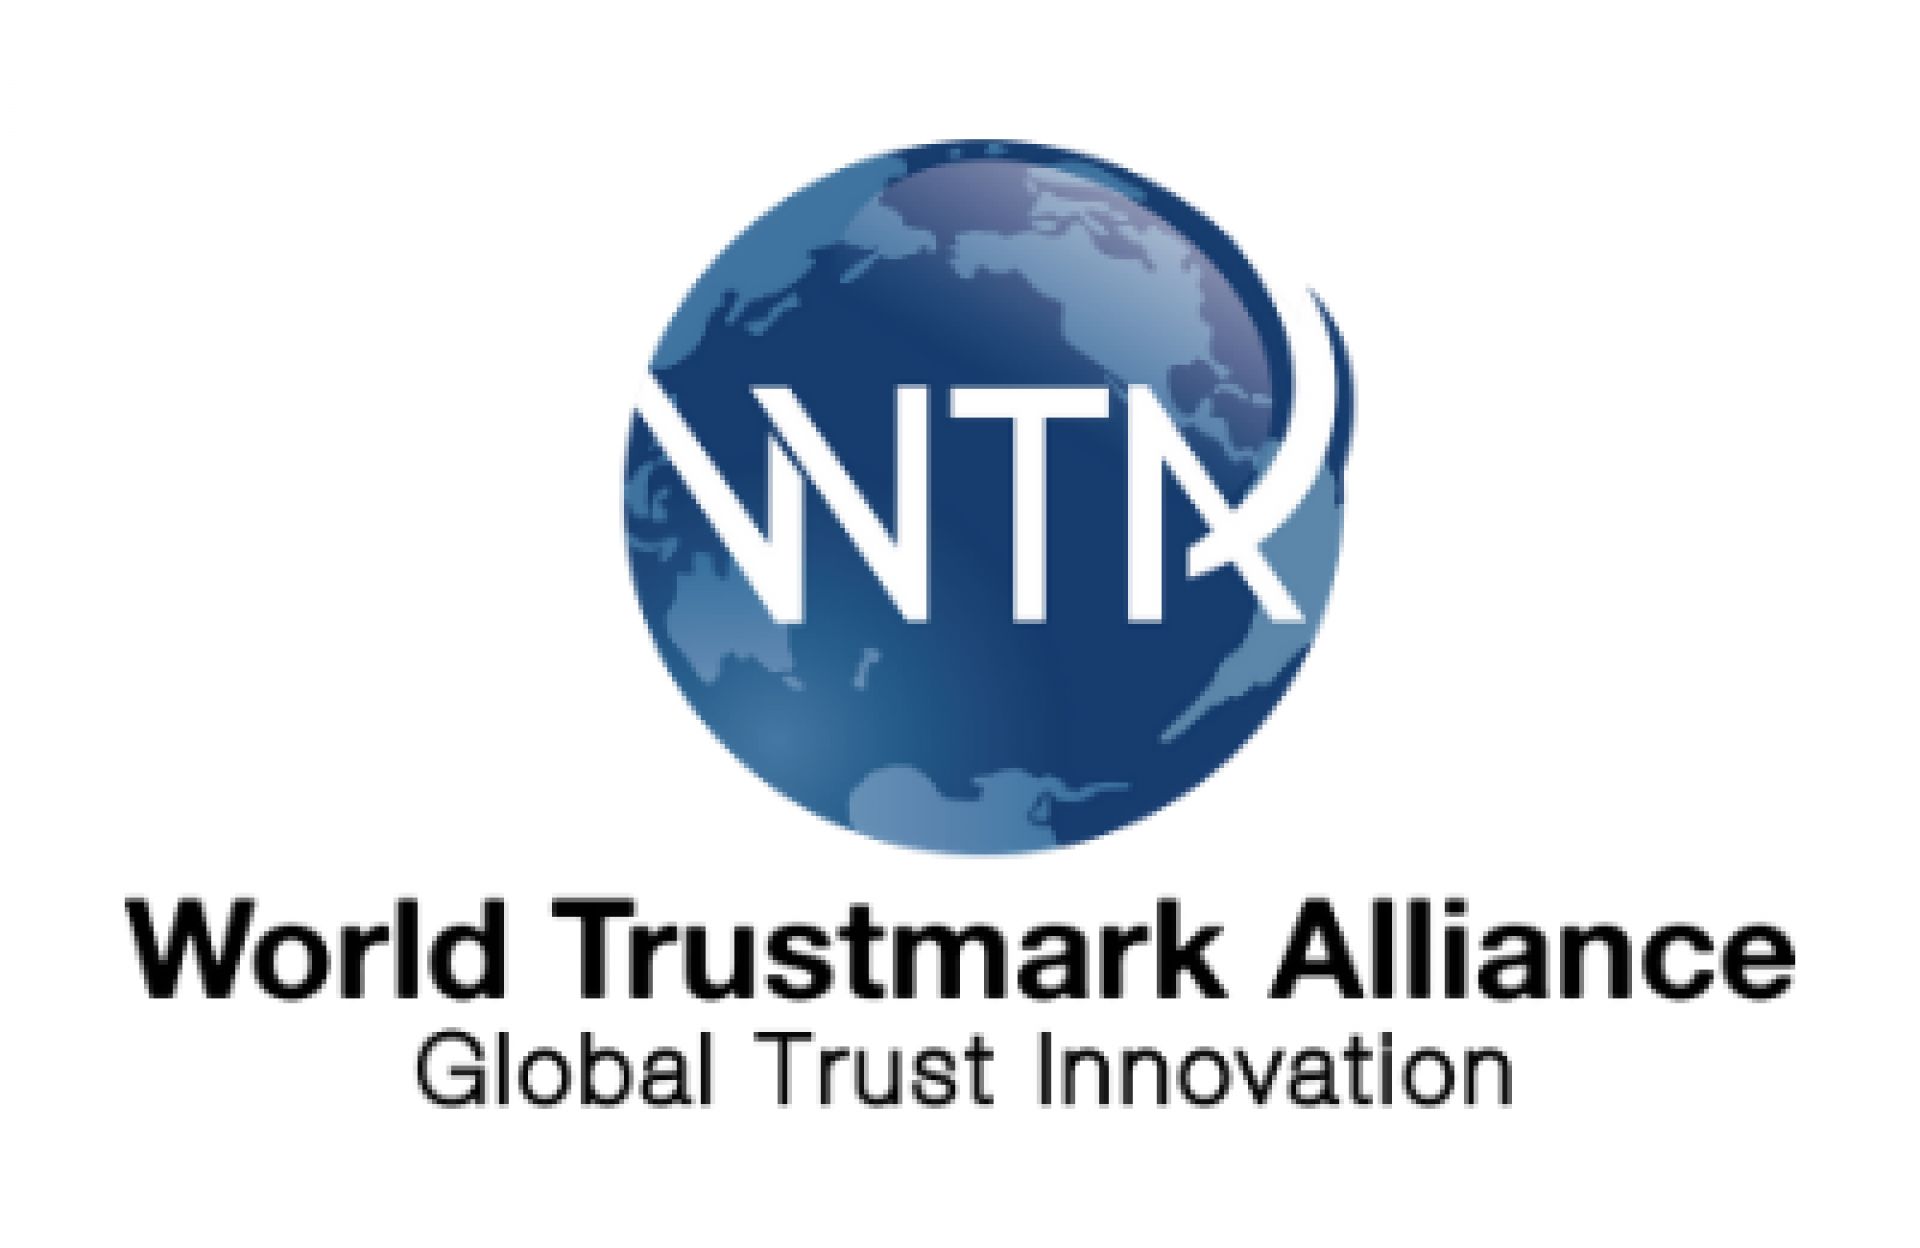 World Trustmark Alliance